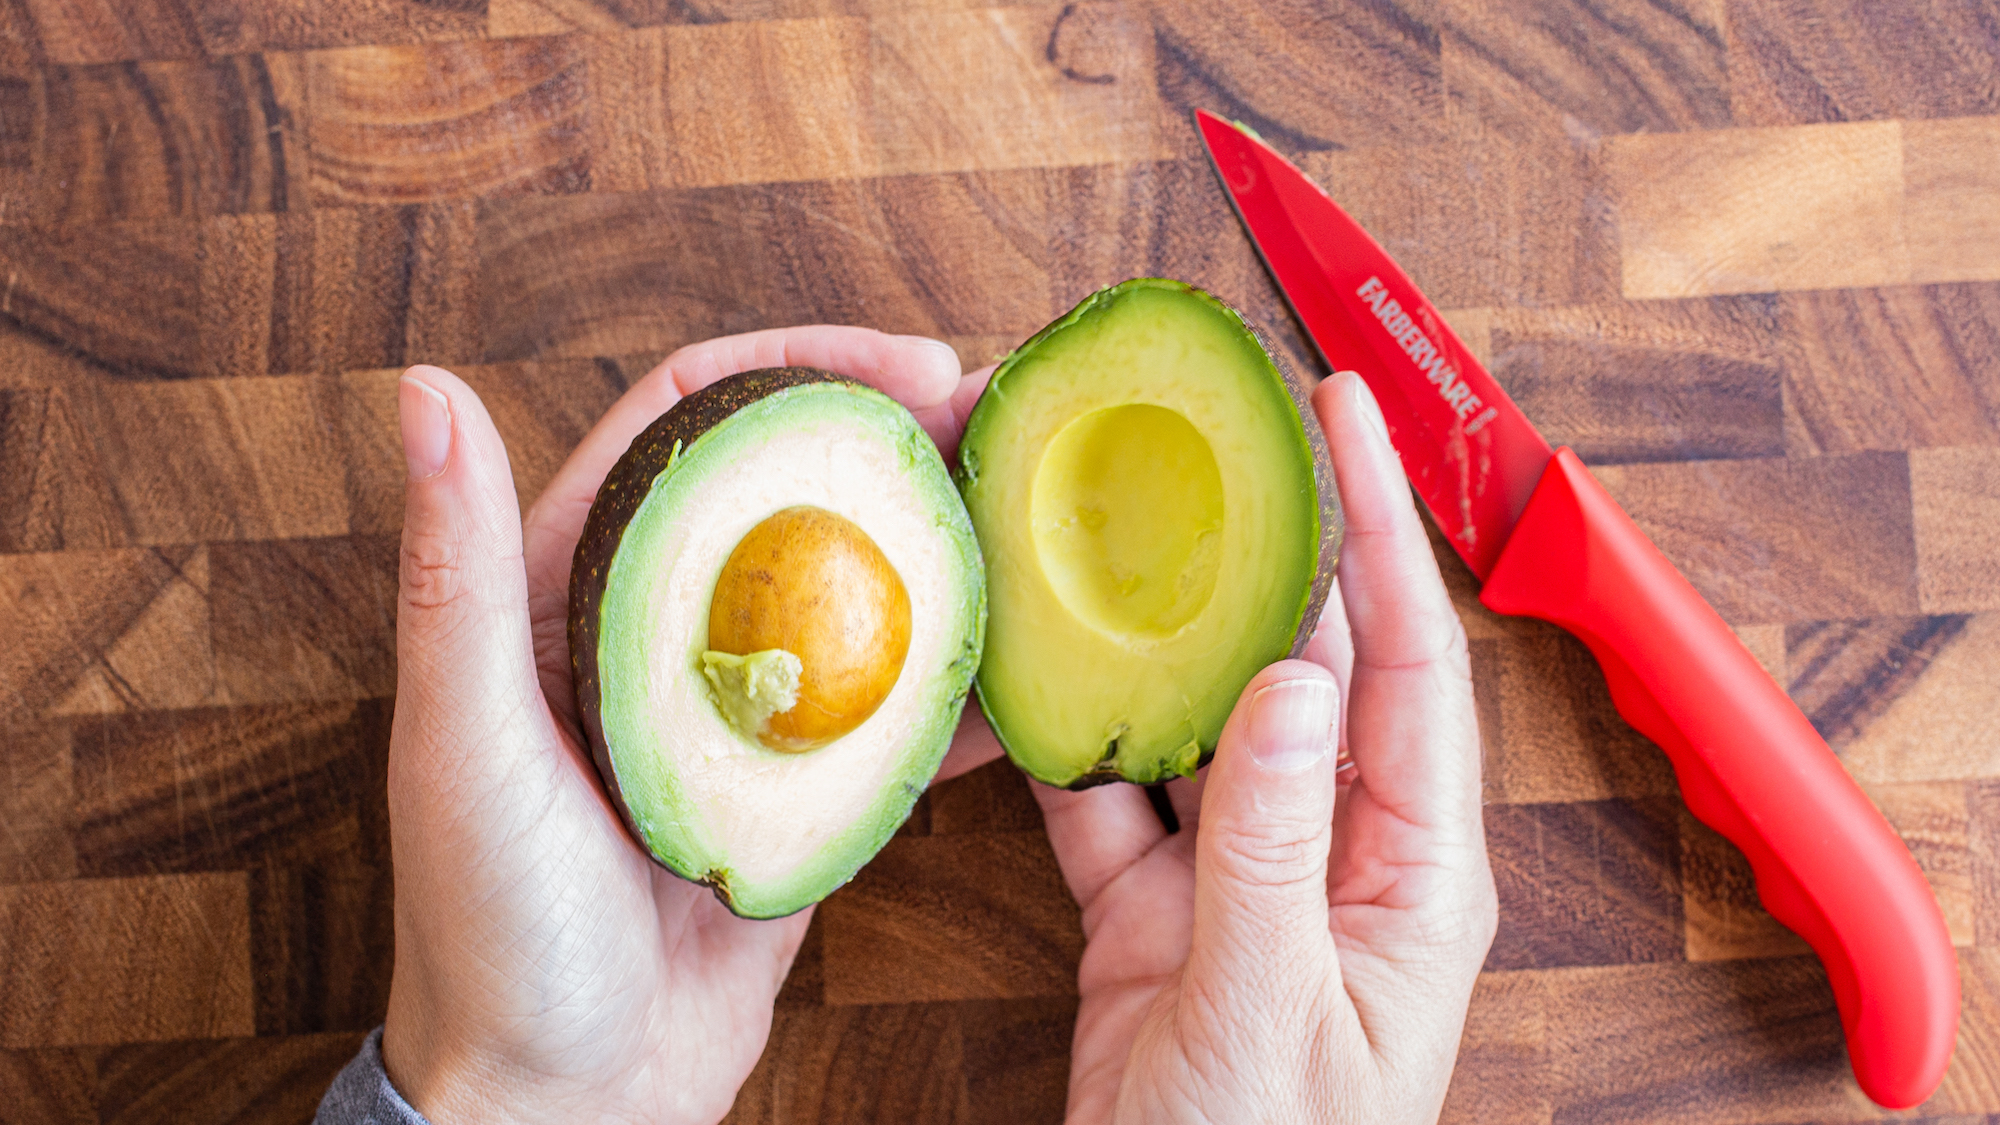 two hands holding avocado halves over a wooden cutting board with red knife